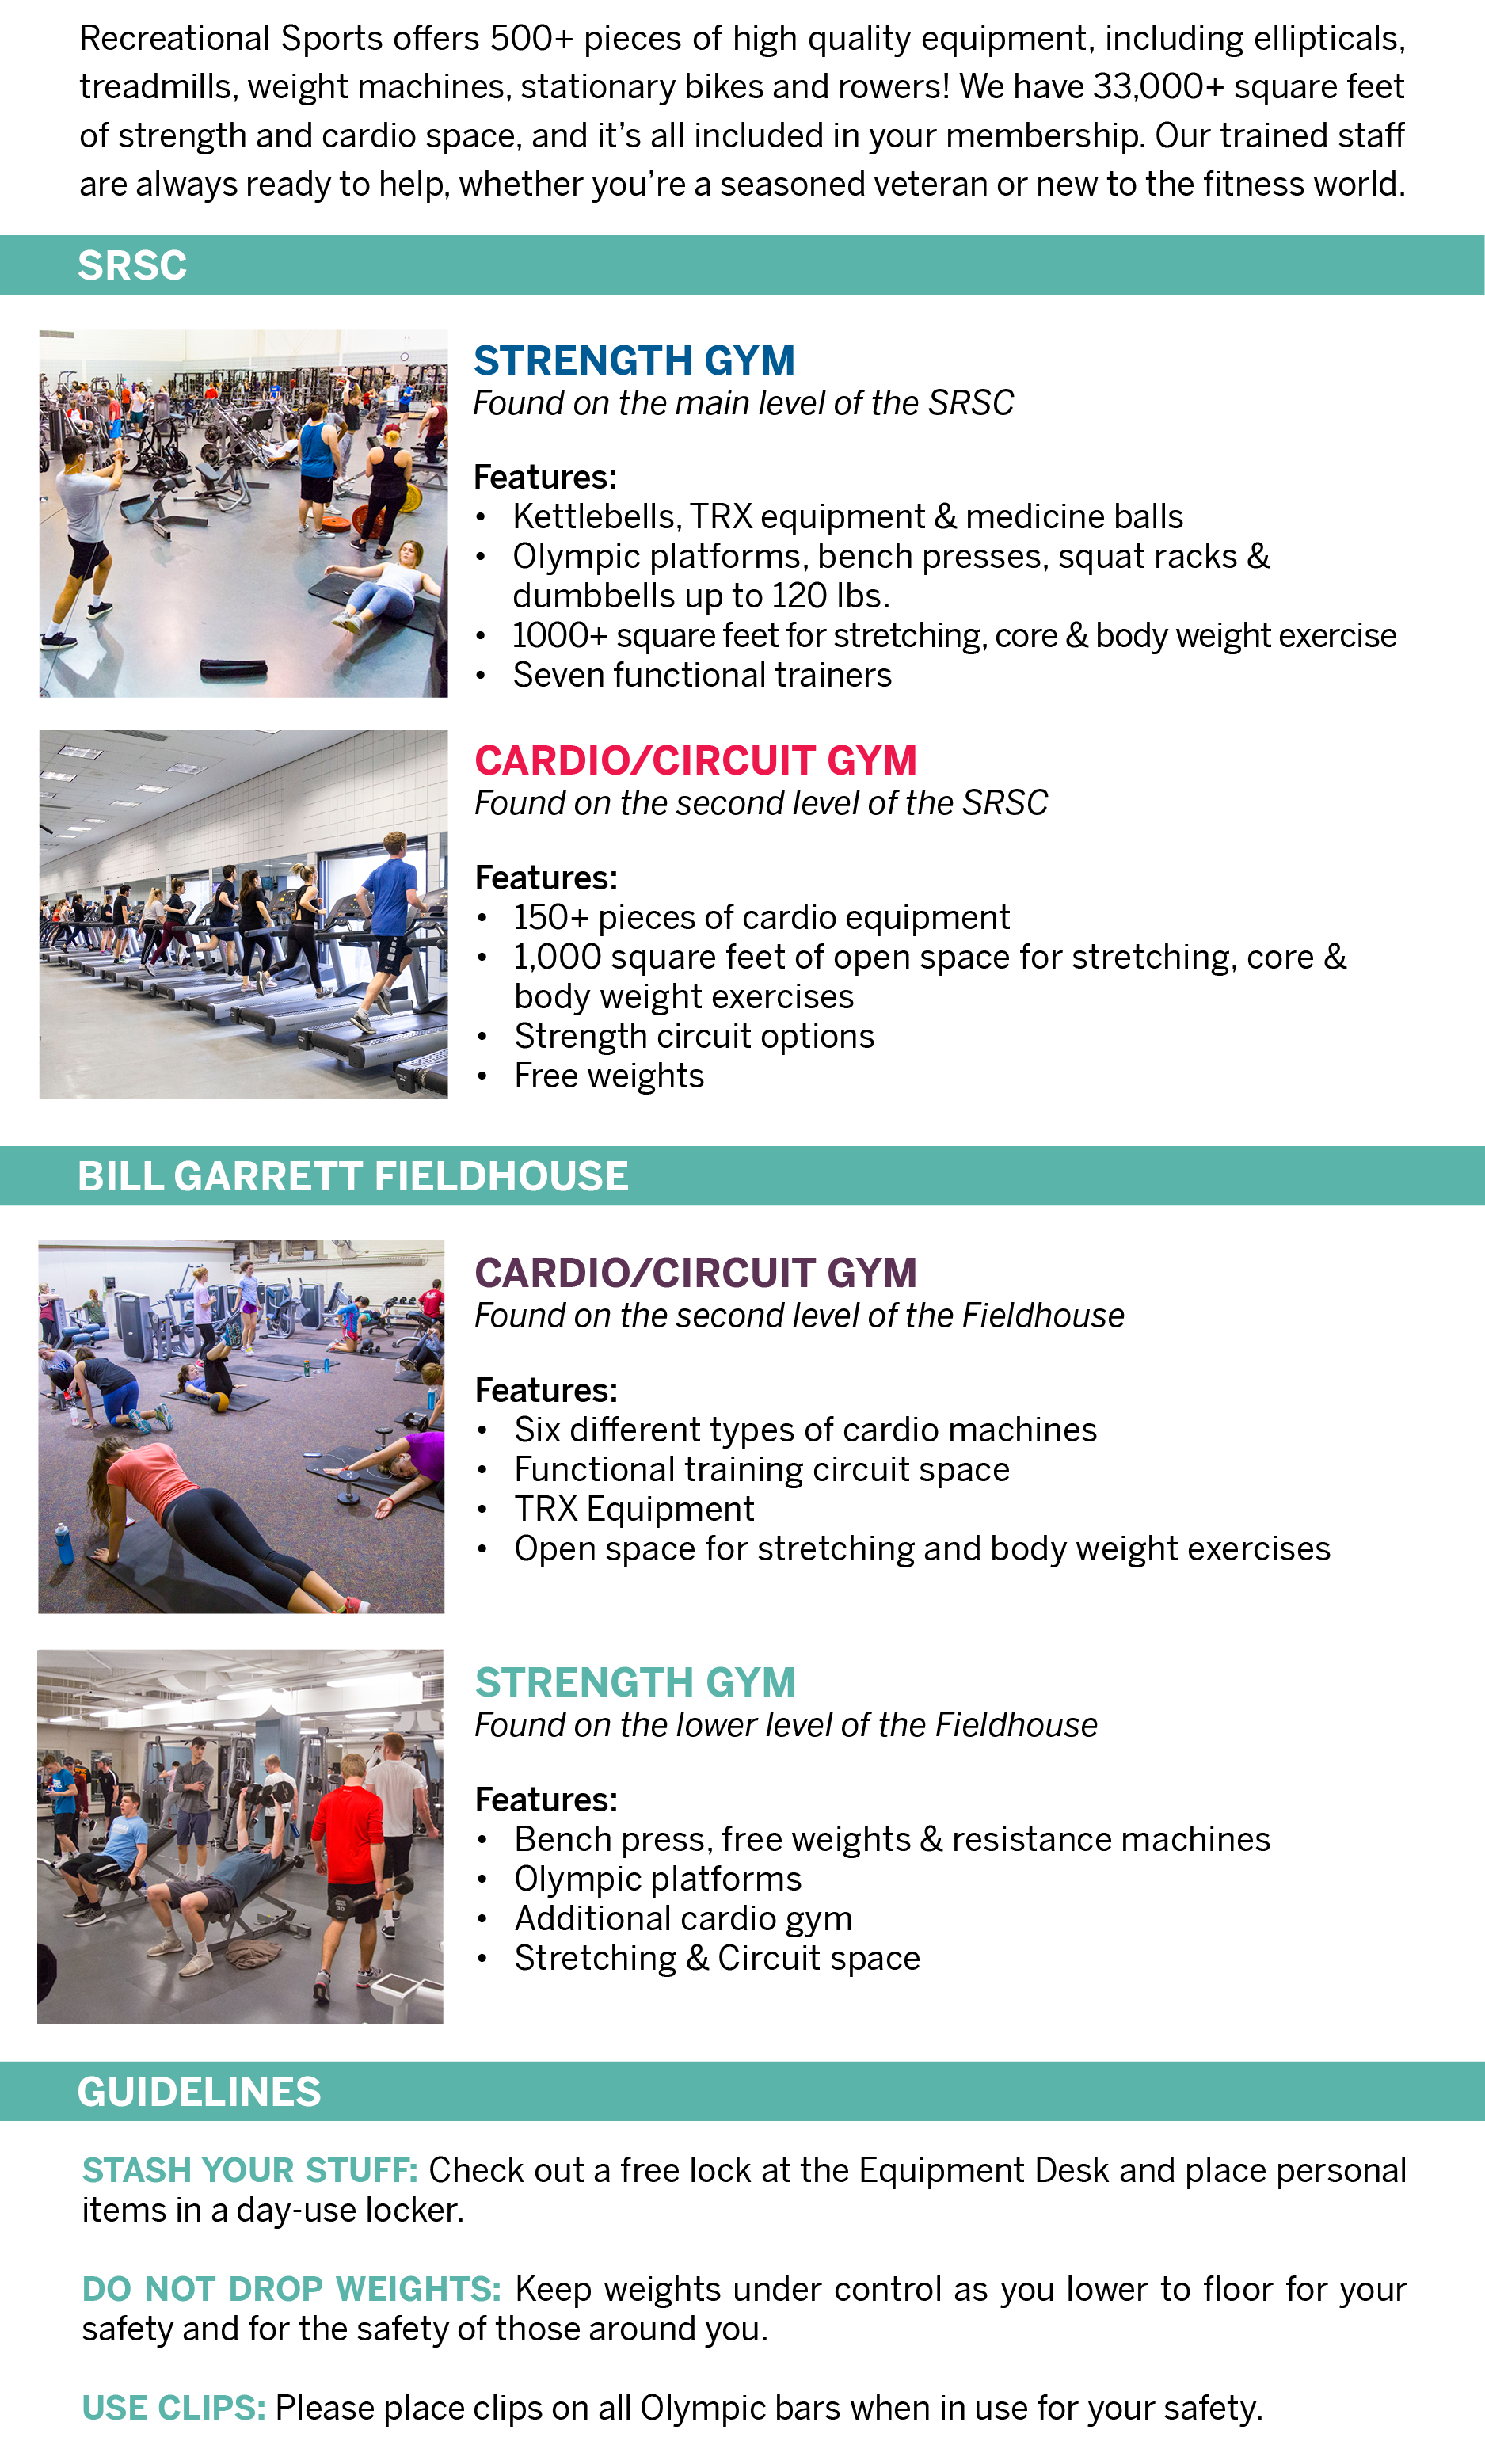 Recreational Sports offers 500+ pieces of high quality equipment, including ellipticals, treadmills, weight machines, stationary bikes, and rowers! We have 33,000+ square feet of strength and cardio space, and it's all included in your membership. Our trained staff are always ready to help, whether you're a seasoned veteran or new to the fitness world.  SRSC  STRENGTH GYM Found on the main level of the SRSC Features: Kettlebells, TRX equipment, & medicine balls  Olympic platforms, bench presses, squat racks, and dumbbells up to 120 lbs.  1000+ square feet for stretching, core, & body weight exercise  Seven functional trainers  CARDIO CIRCUIT GYM Found on the second level of the SRSC Features: 152 pieces of cardio equipment 1,000 square feet of open space for stretching, core, and body weight exercises Strength circuit options Free weights  CIRCUIT STUDIO Found on the main level of the SRSC Features: Open space for stretching, core, and body weight exercises Strength circuit options, TRX equipment Smaller space for those who prefer a semi-private setting   INTRAMURAL CENTER  CARDIO/CIRCUIT GYM Found on the second level of the Intramural Center Features: Six different types of cardio machines Functional training circuit space Open space for stretching and body weight exercises  STRENGTH GYM Found on the lower level of the Intramural Center Features: Bench press, free weights, resistance machines Olympic platforms Additional cardio gym Stretching and Circuit space  GUIDELINES Stash Your Stuff: Check out a free lock at the Equipment Desk and place personal items in a day-use locker.   Do not Drop Weights: Keep weights under control as you lower to floor for your safety and for the safety of those around you.   Use Clips: Please place clips on all Olympic bars when in use for your safety.